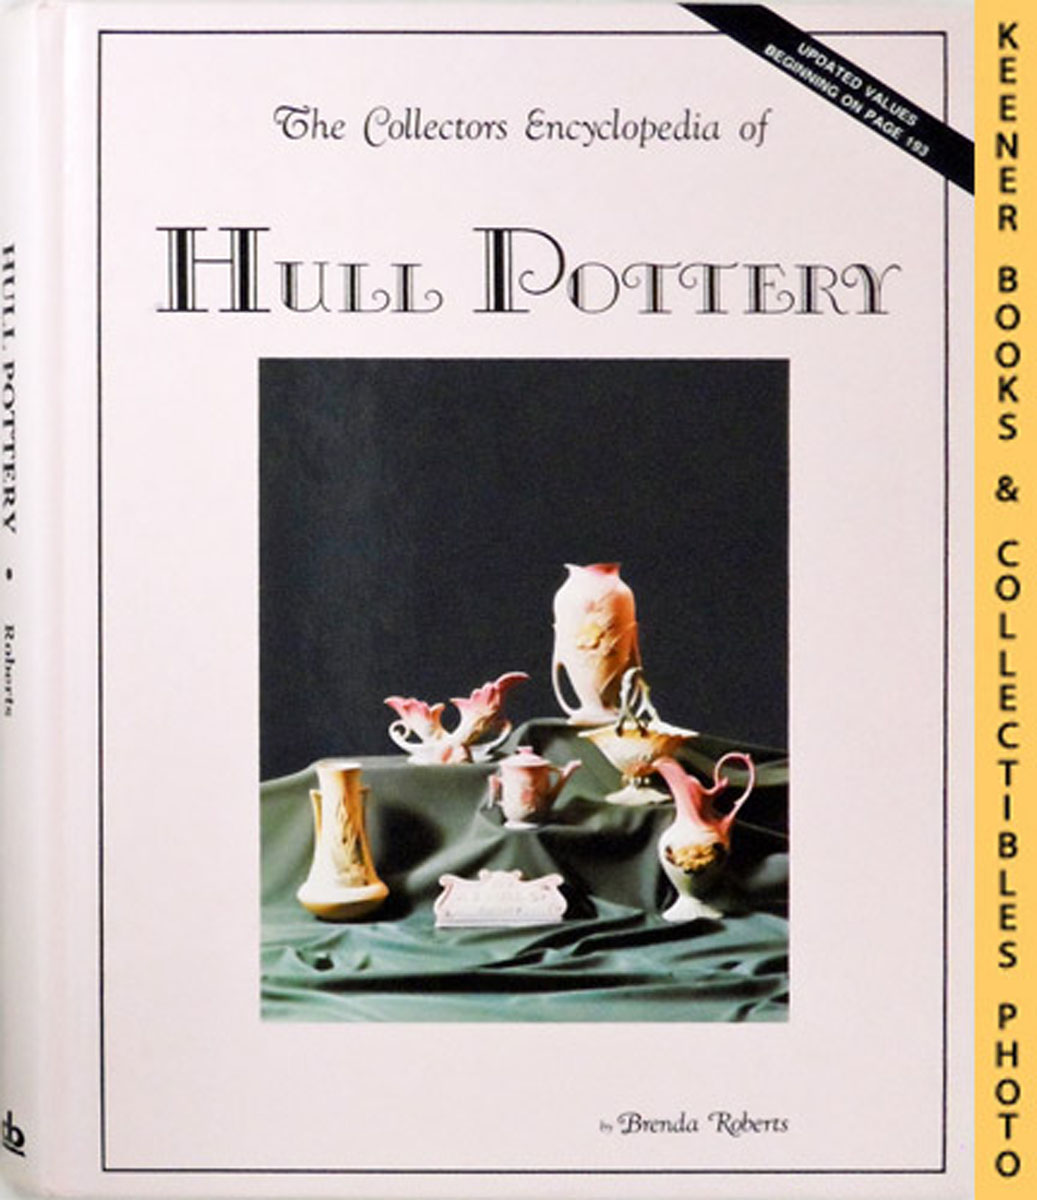 Image for The Collectors Encyclopedia Of Hull Pottery